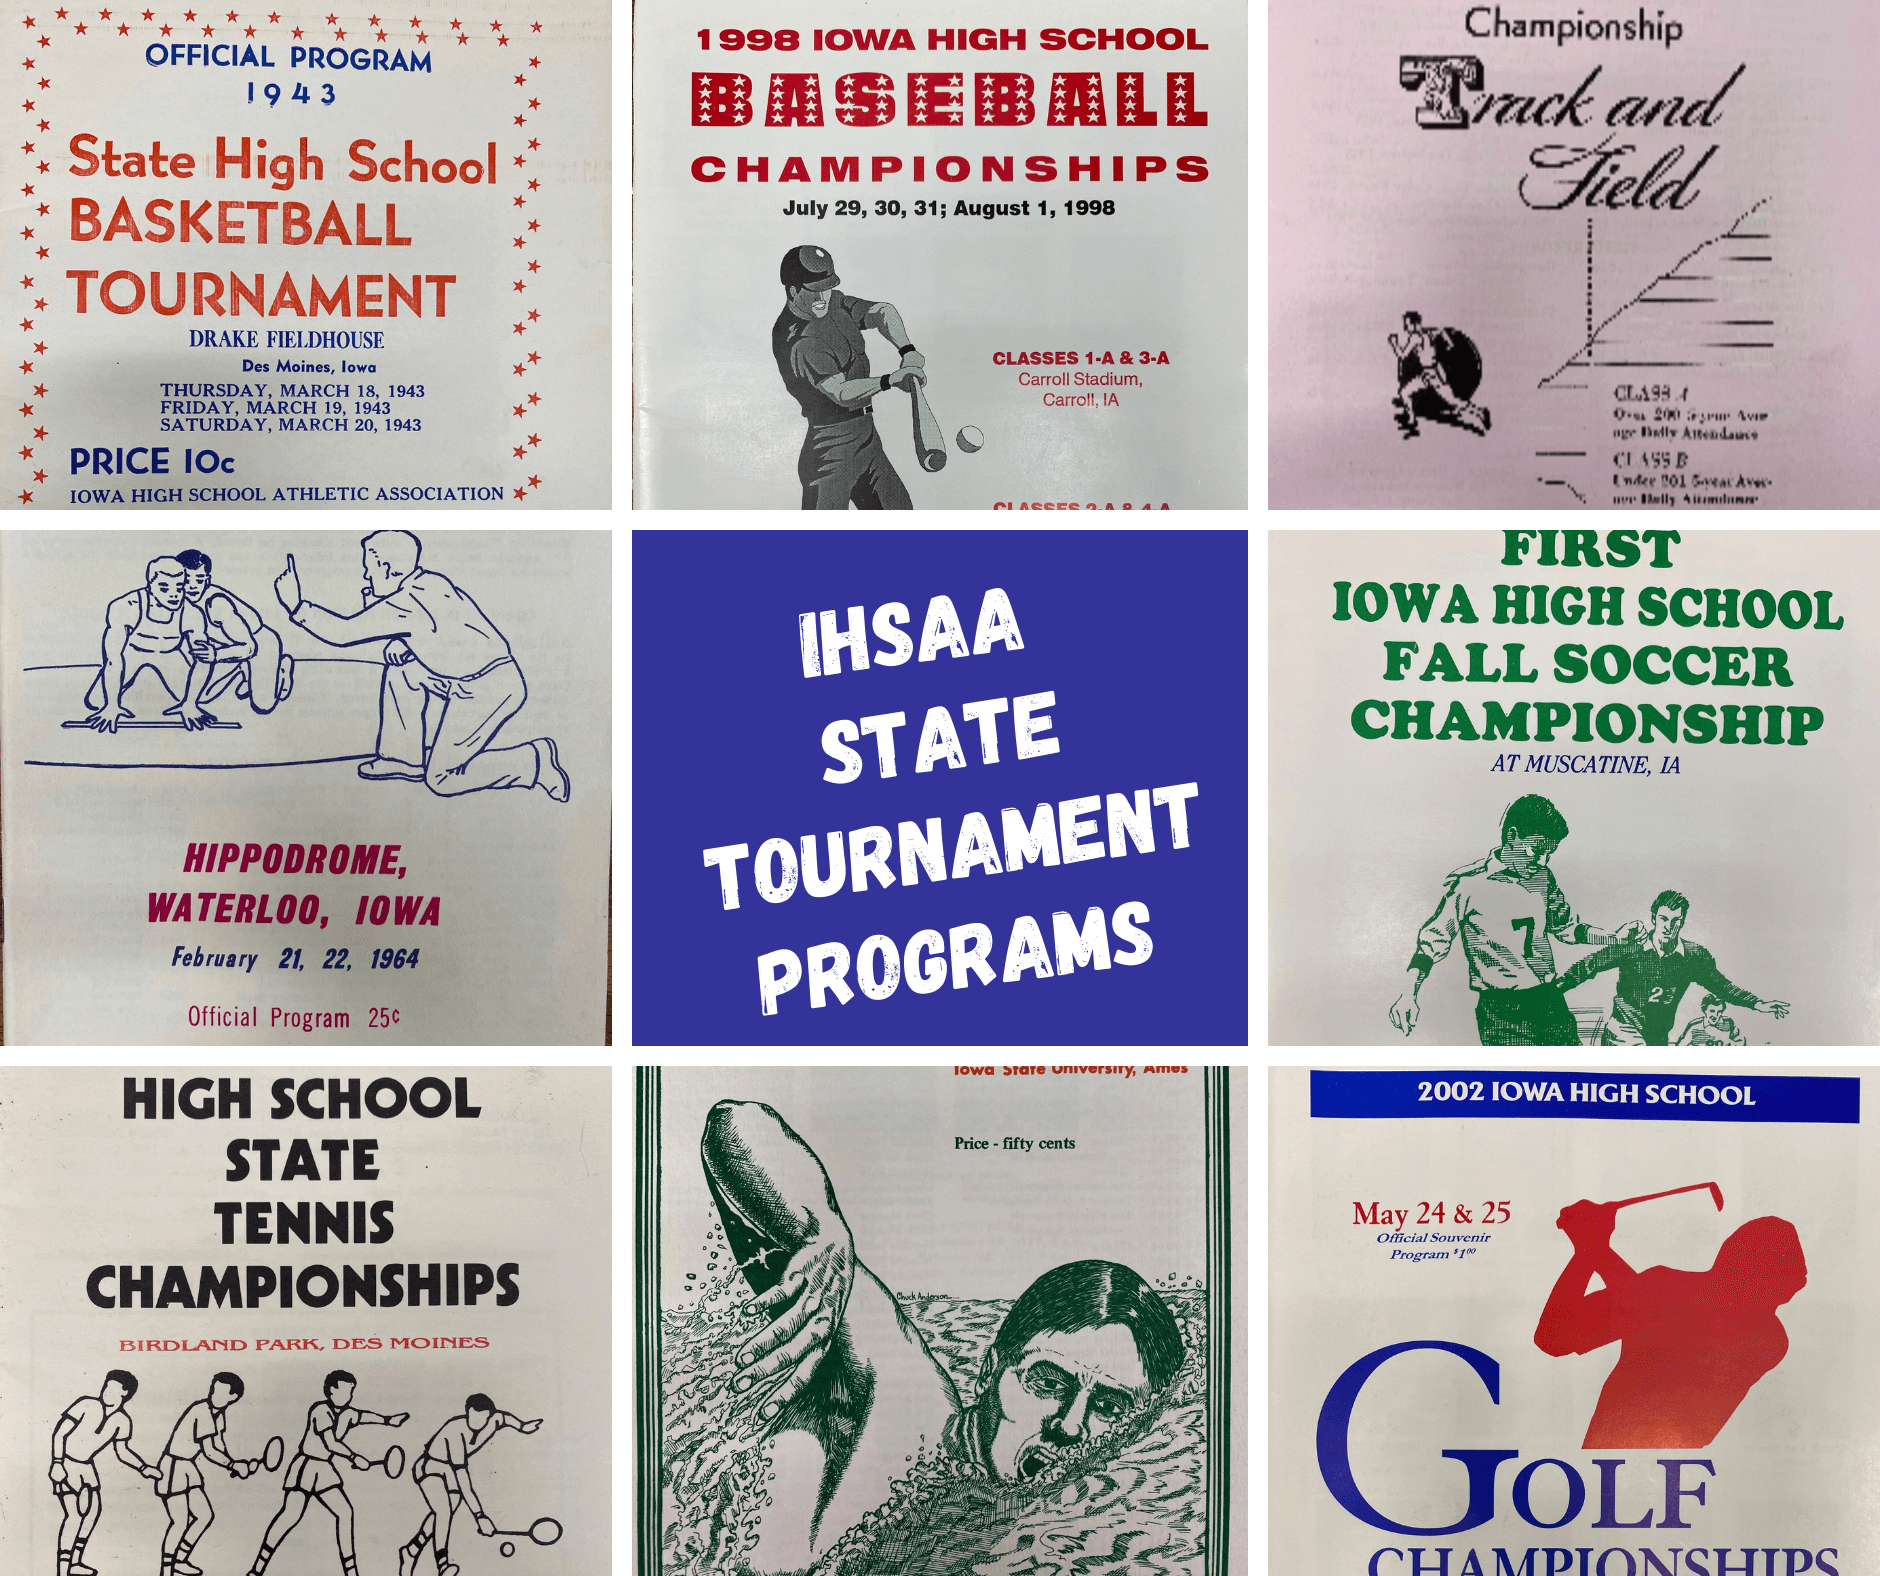 Archives: Seeking State Tournament Programs